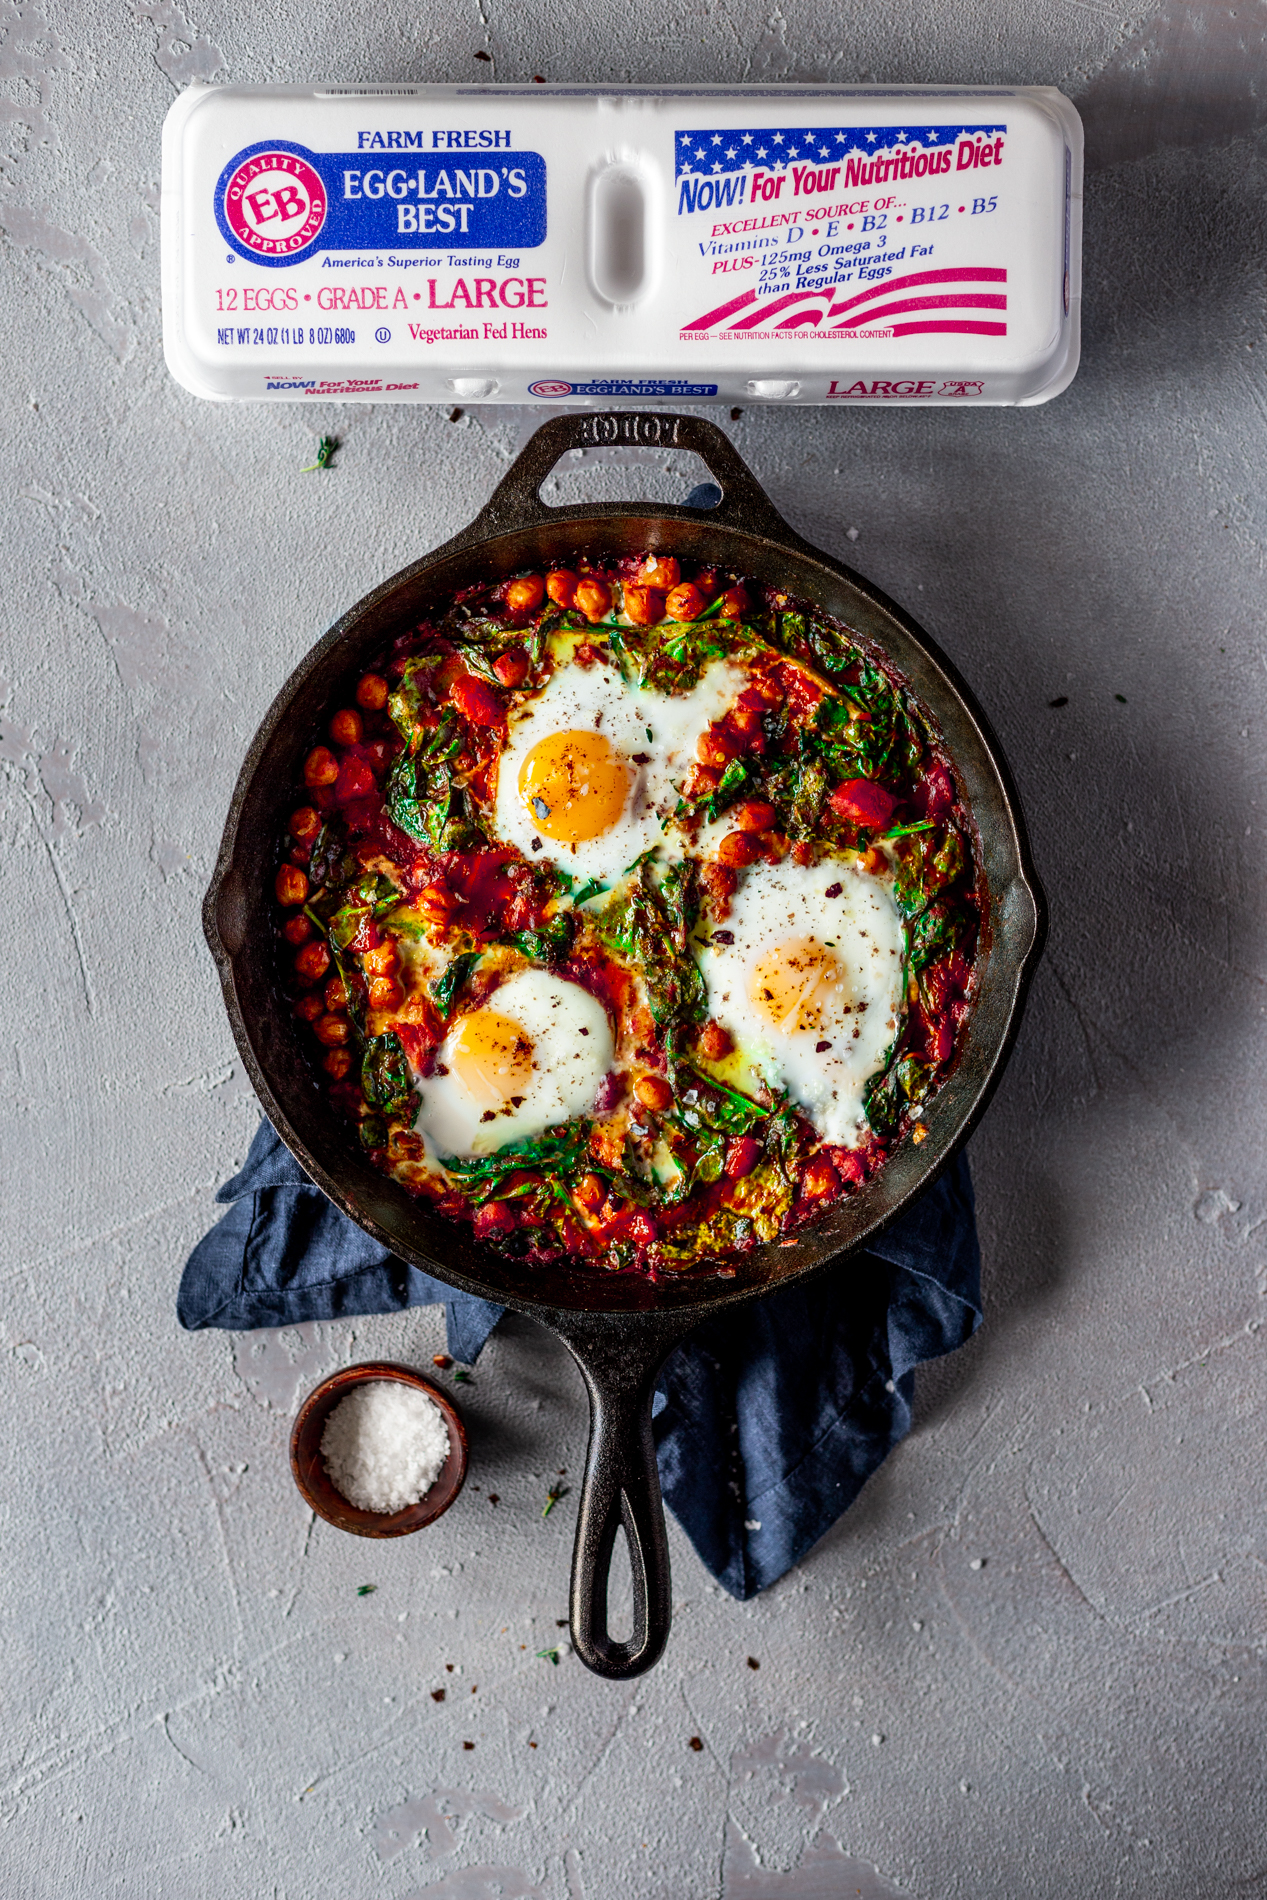 overhead view of a cast iron skillet with harissa baked eggs with chickpeas, spinach, and sumac on a blue napkin, with a carton of Eggland's Best eggs